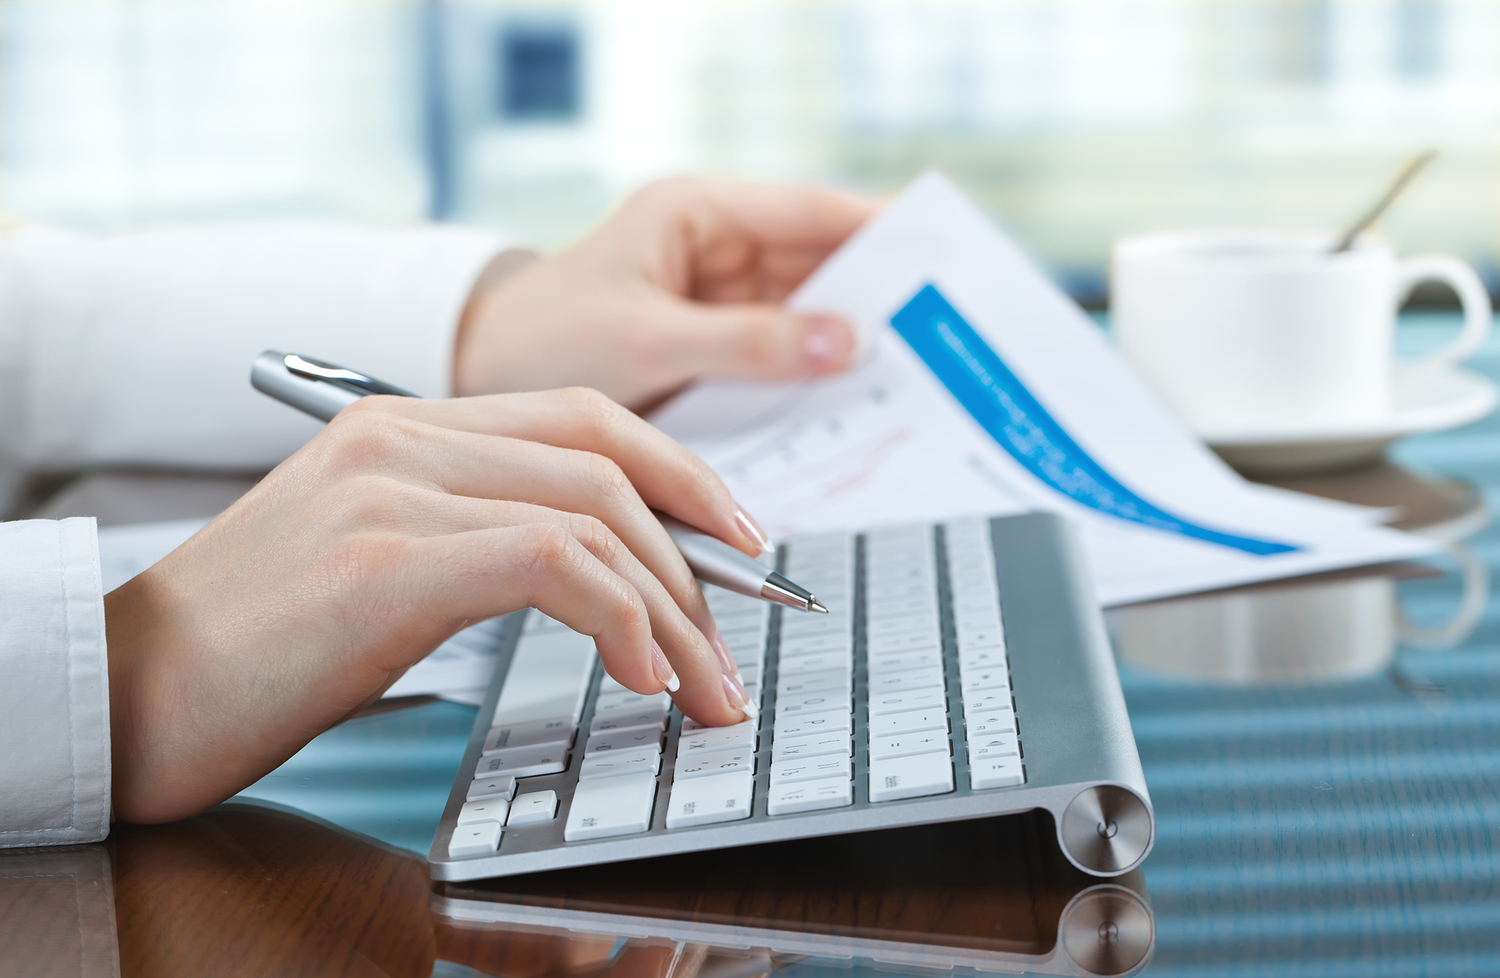 Variety Of Bookkeeping Services And Accounting Features For Business Firms